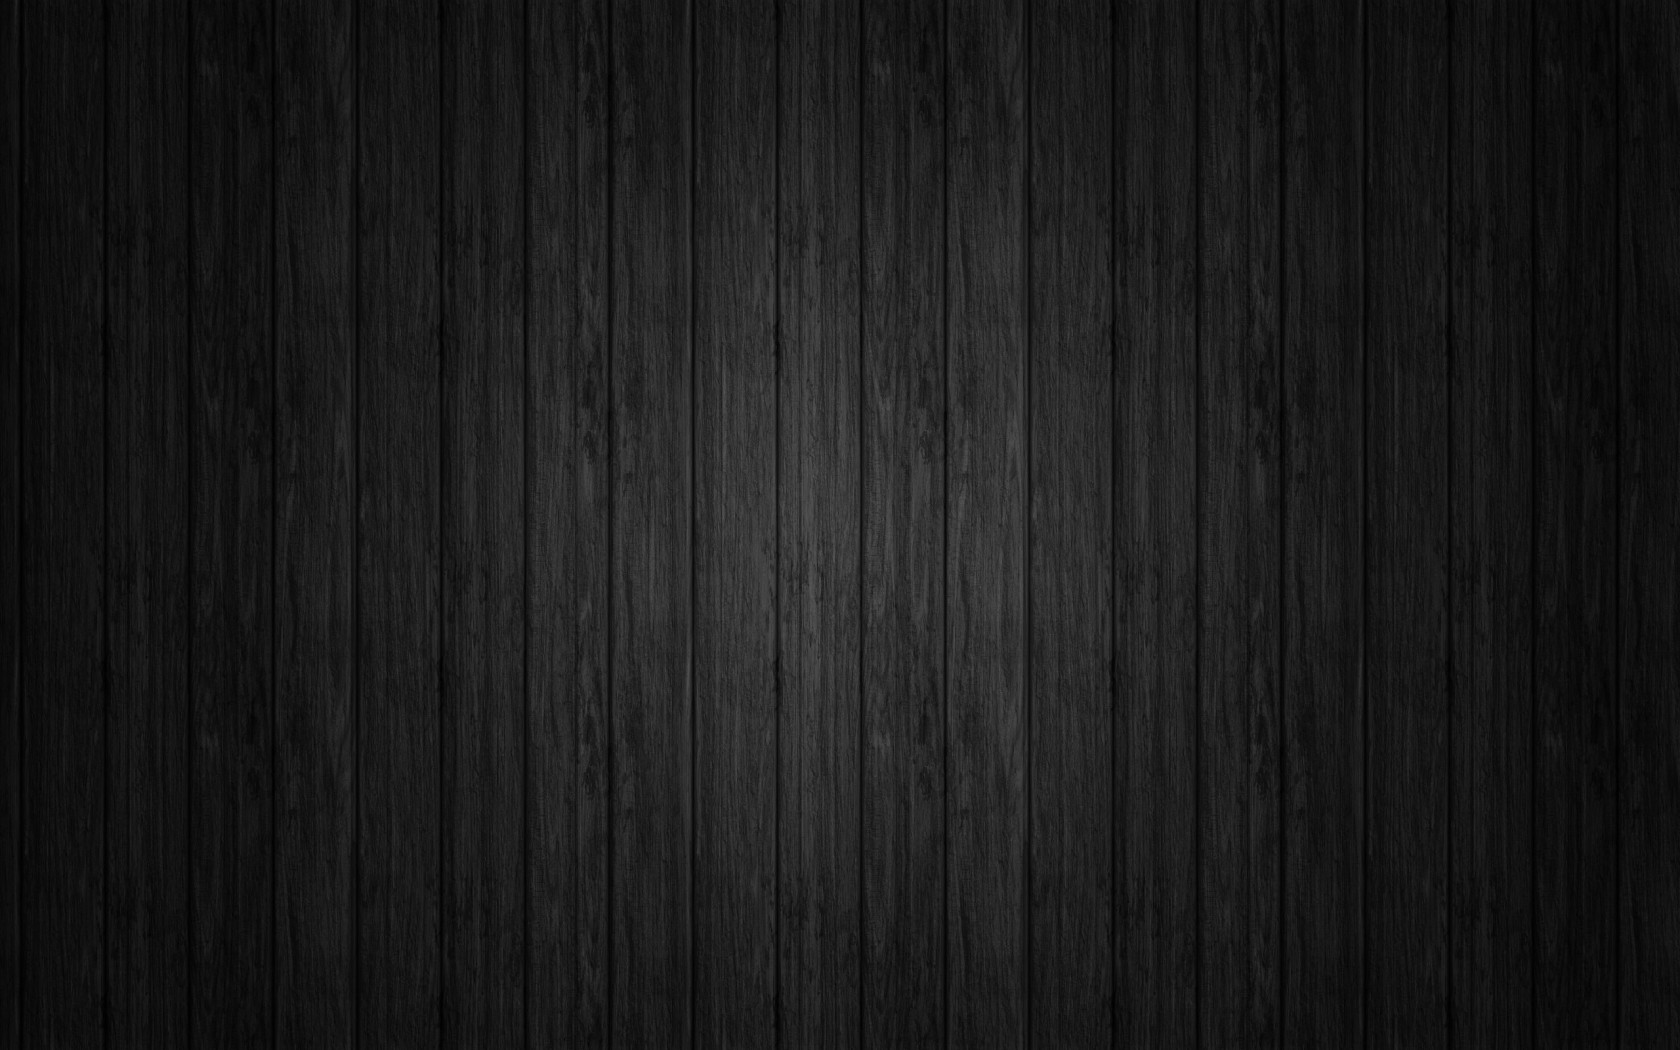 Dark Wood Texture Wallpaper for Desktop 1680x1050